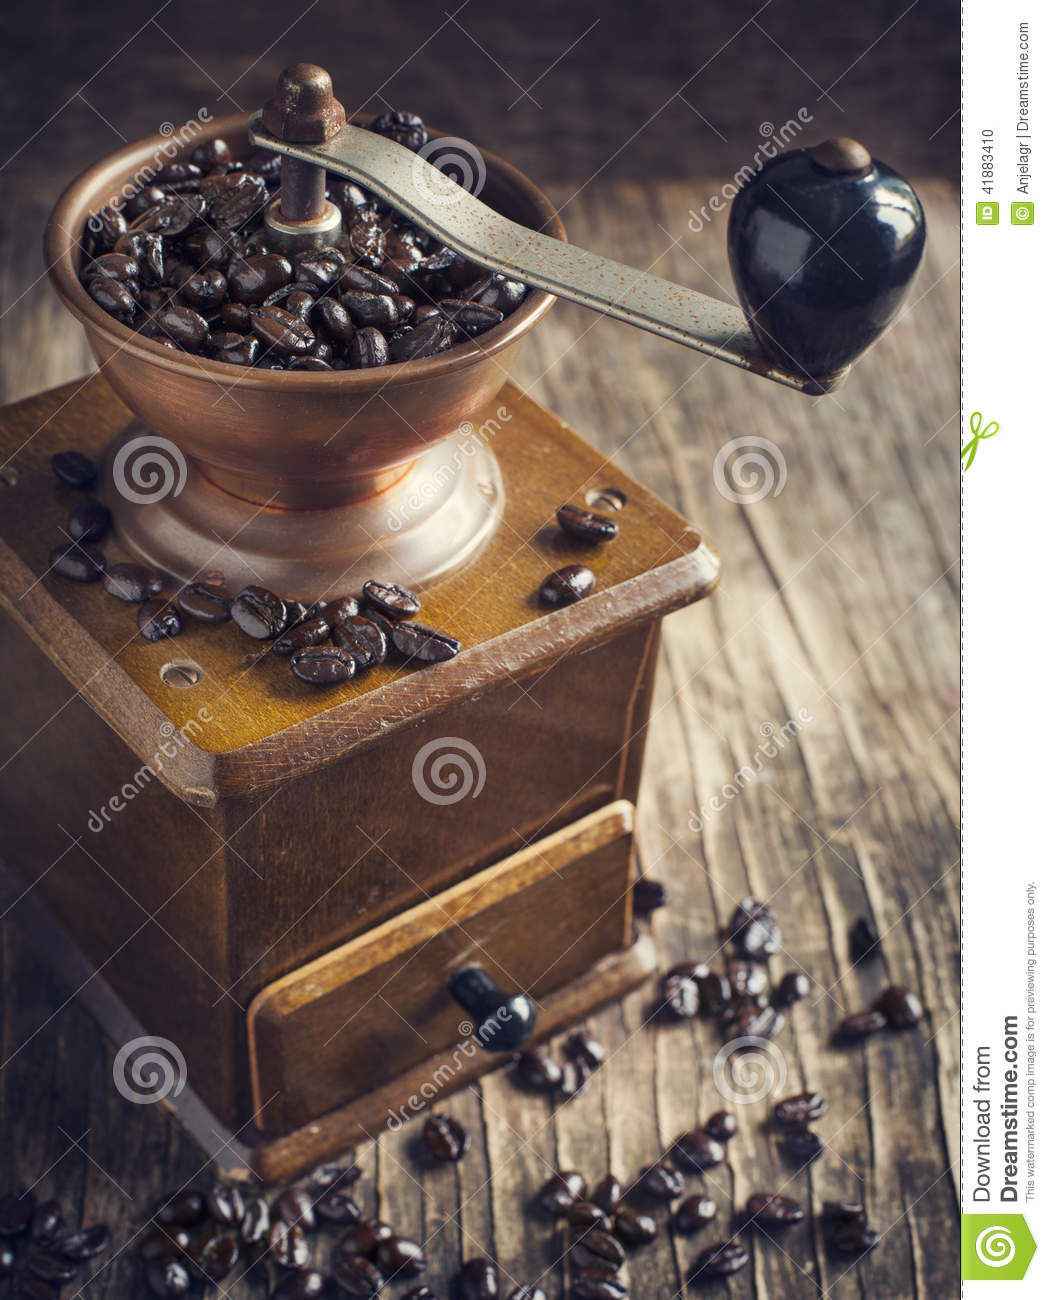 Download Antique Coffee Grinder With Coffee Beans Stock Photo - Image of mill, dark: 41883410